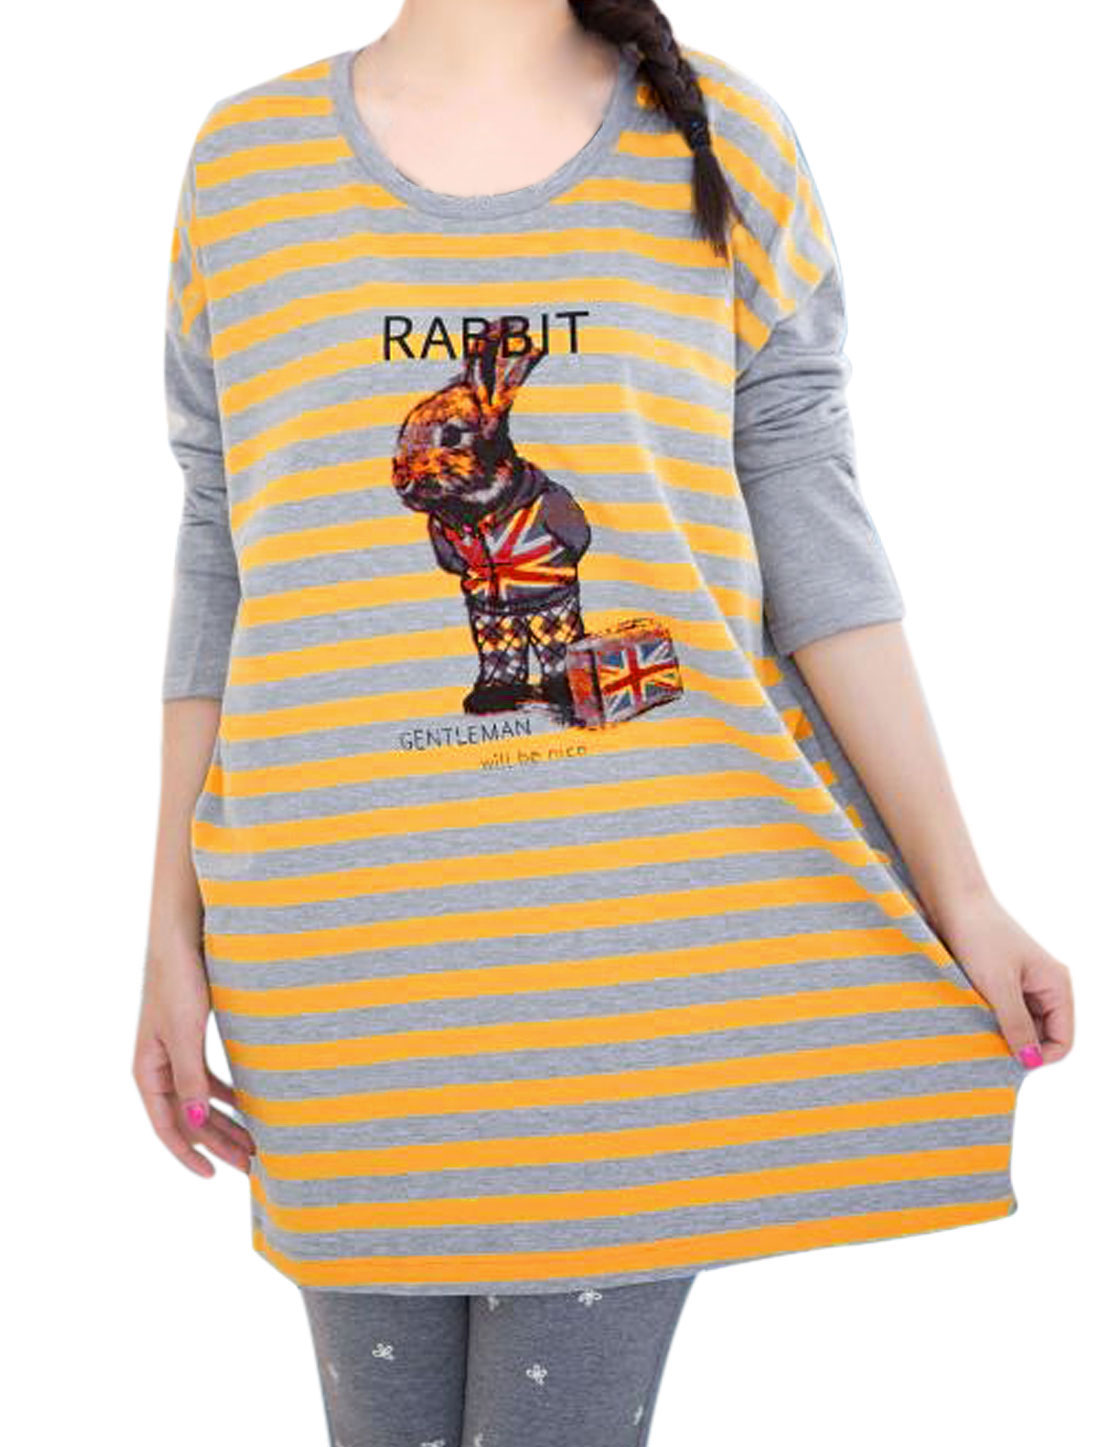 Motherhood Dolman Design Stripes Rabbit Letters Printed Blouse Yellow Light Gray XL